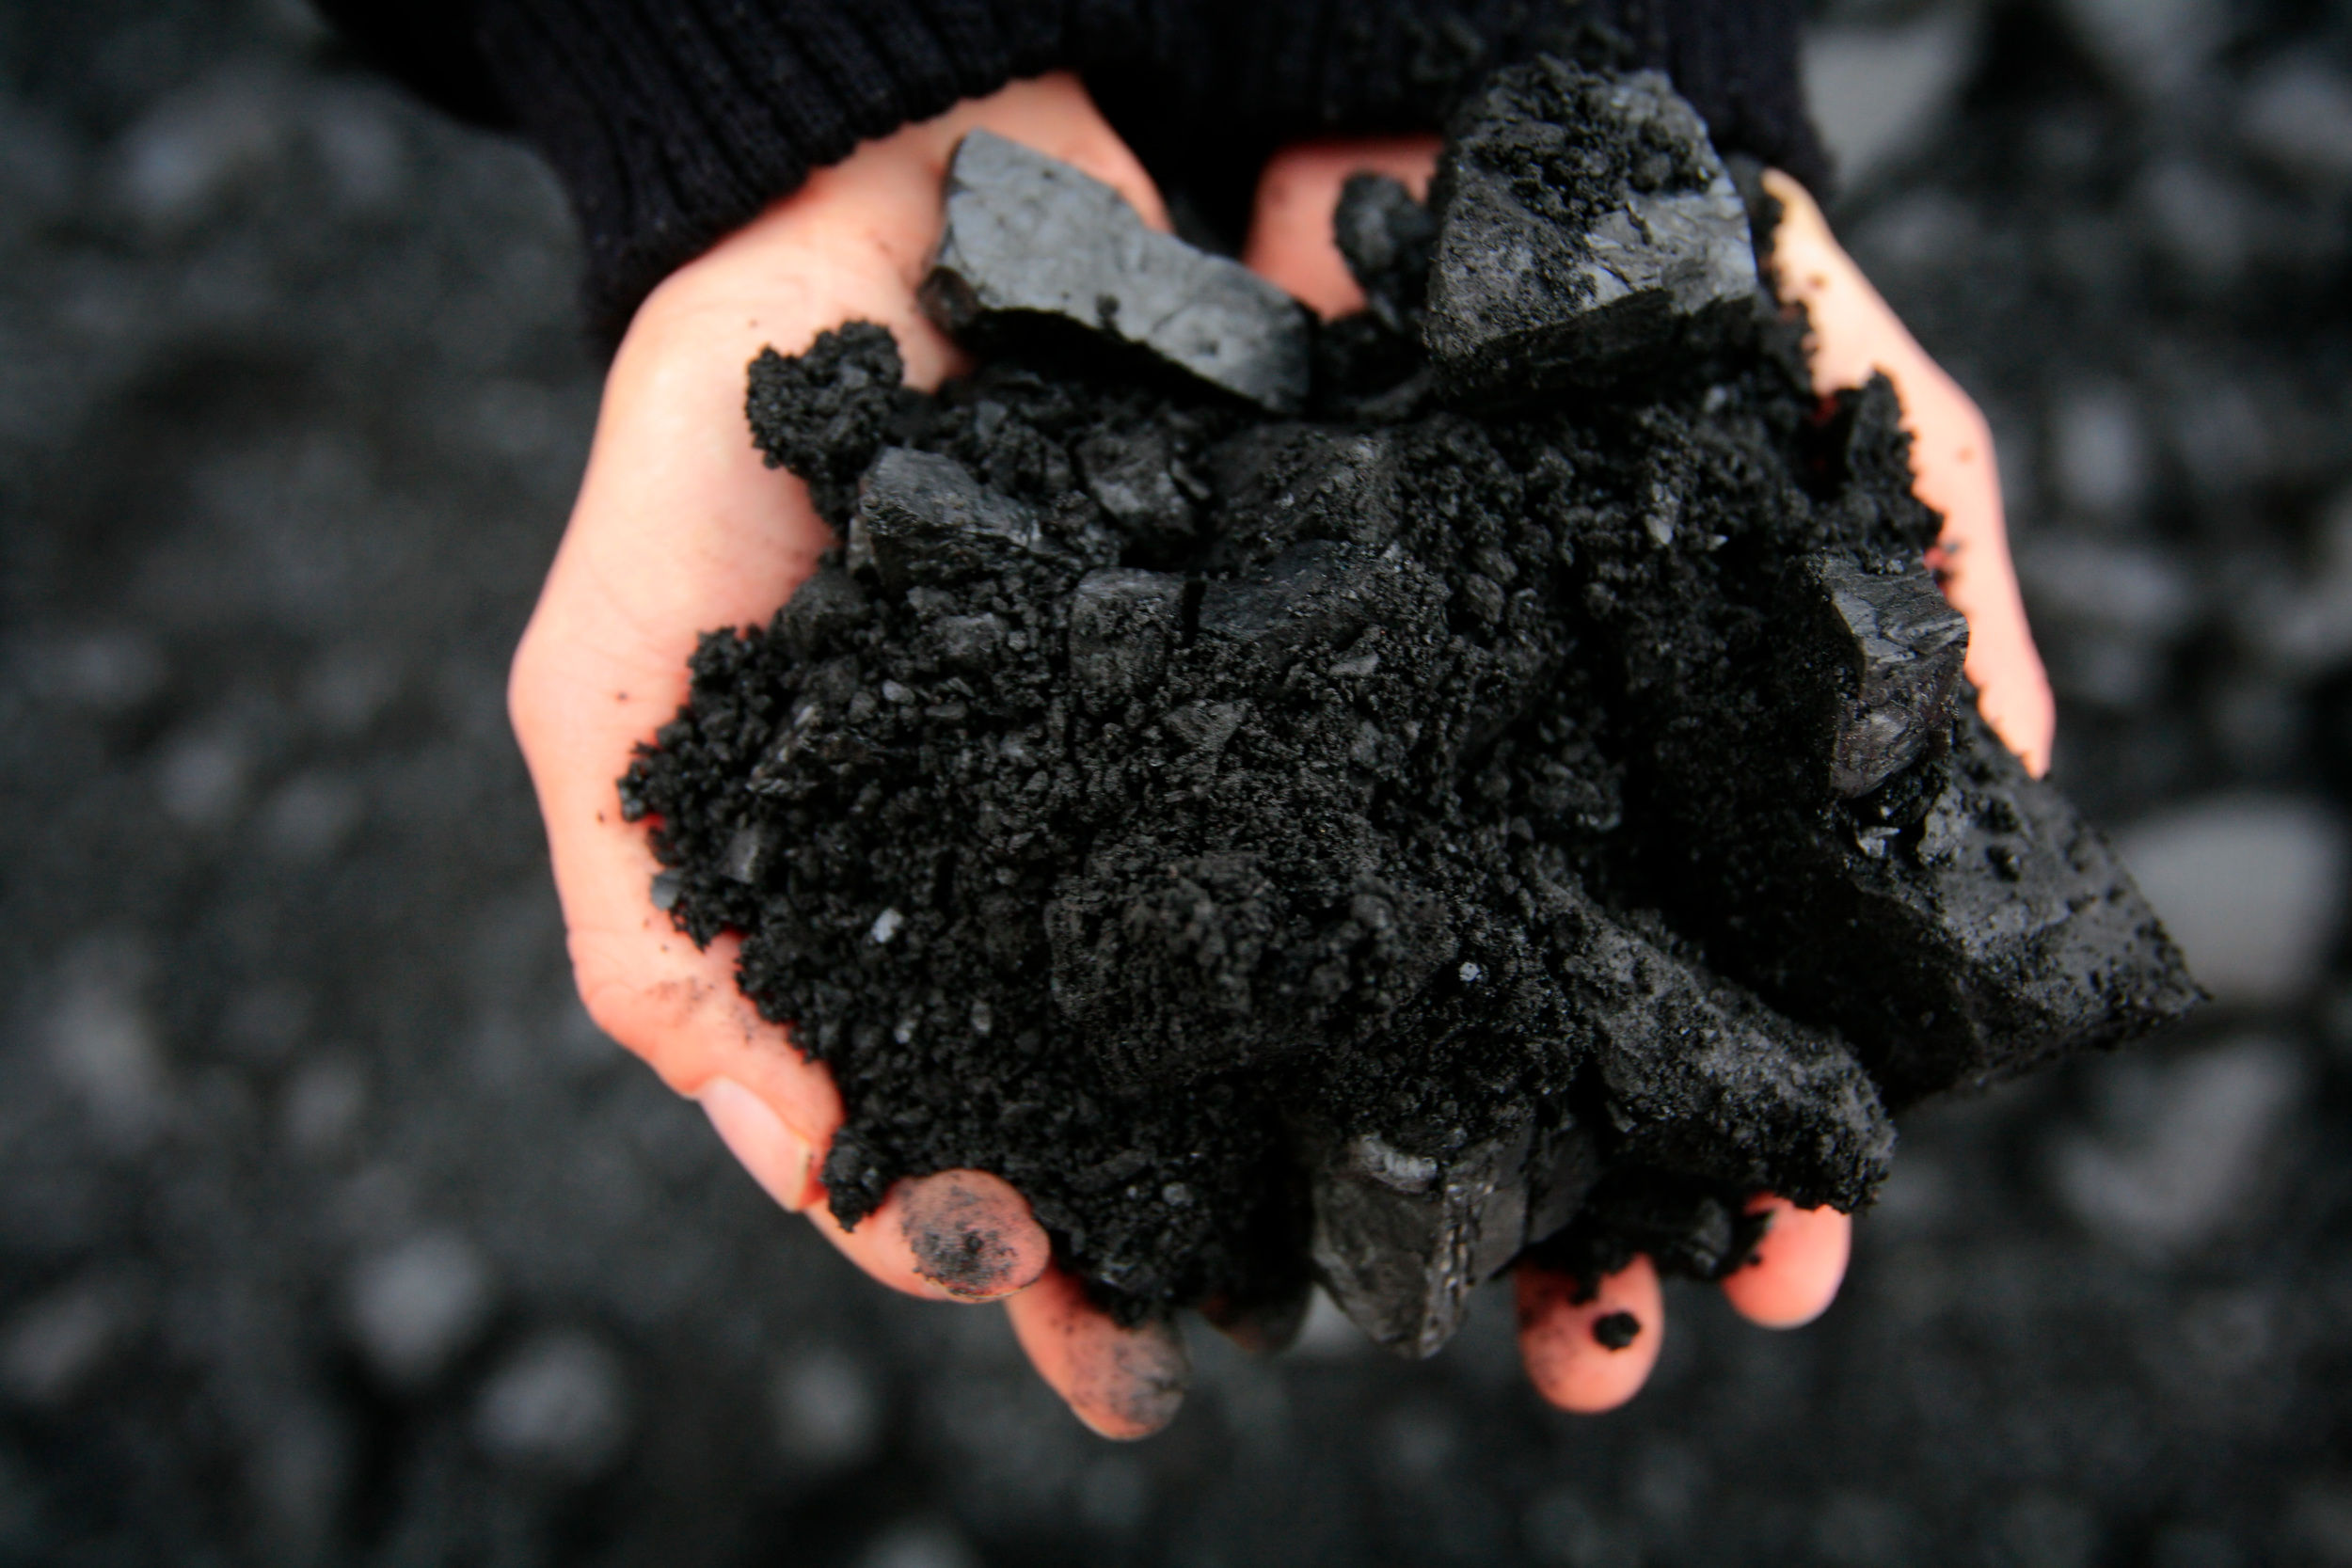 Close up of hands Full of Coal